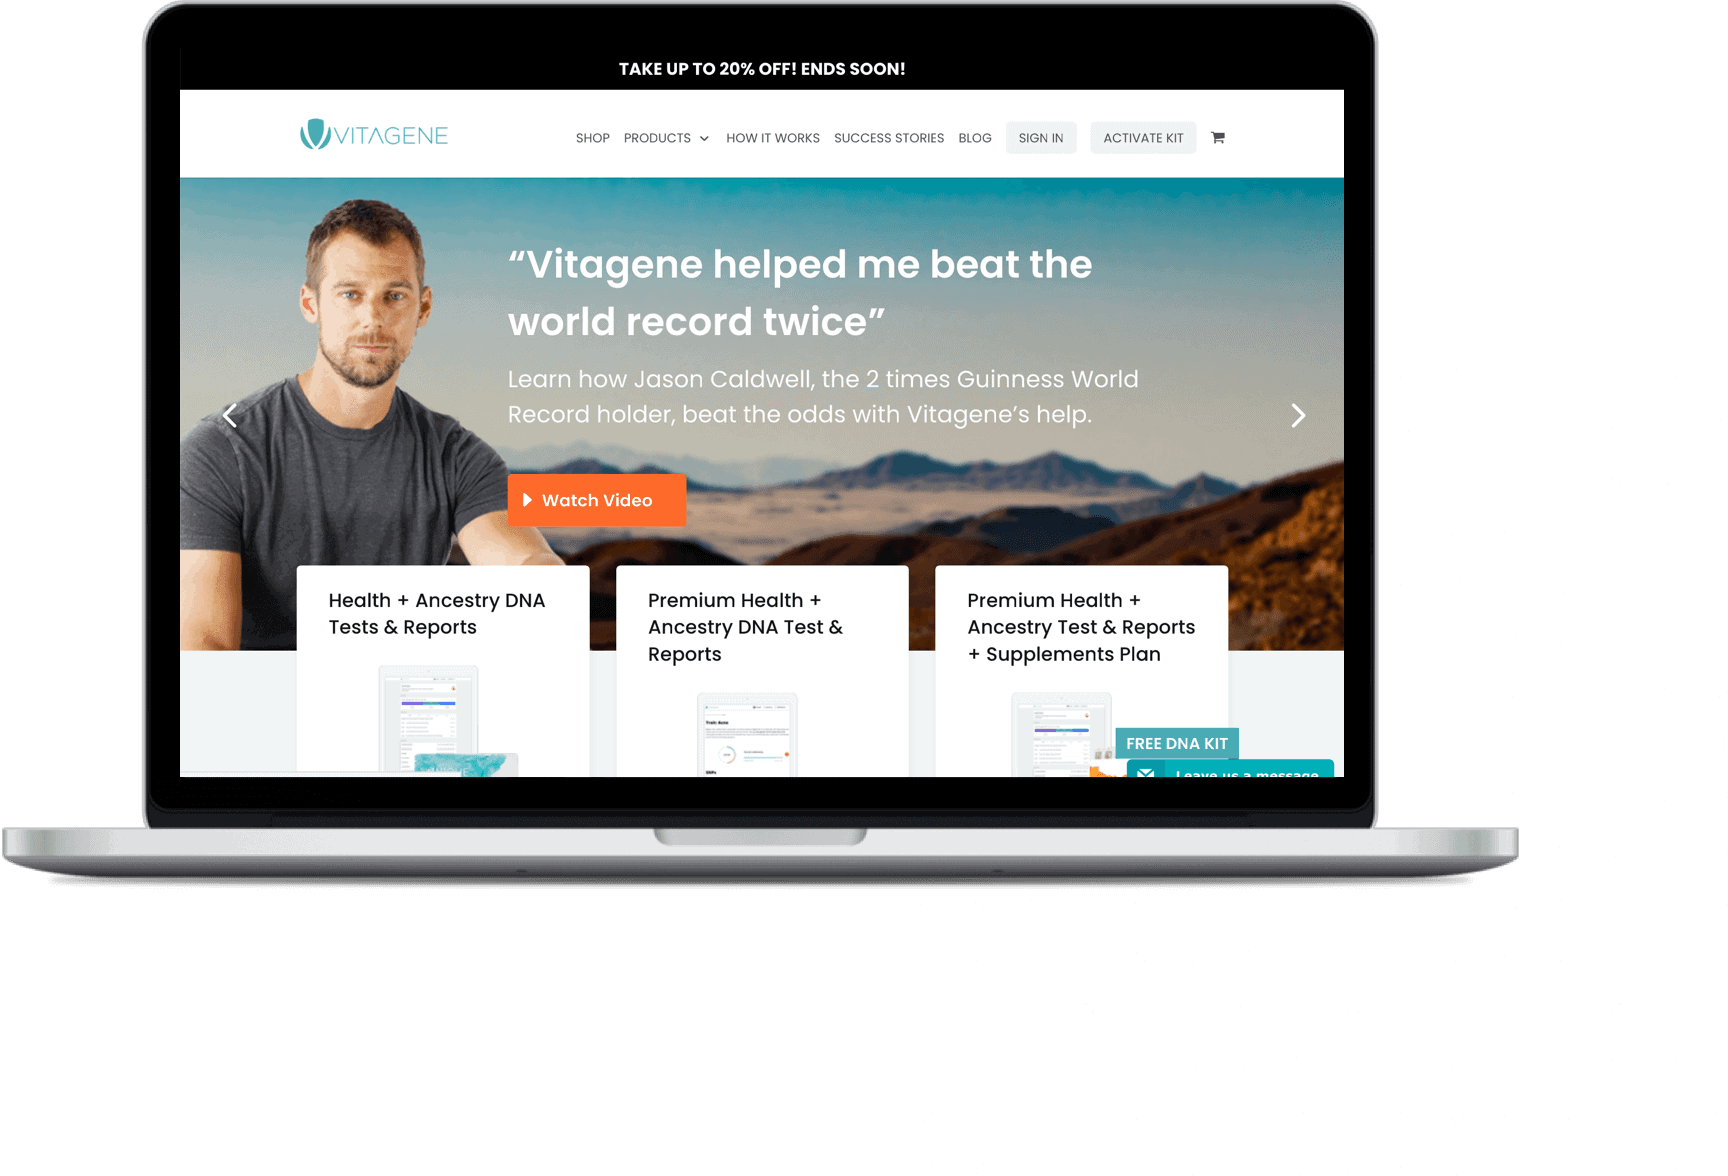 work-laptop-mockup-vitagene-website